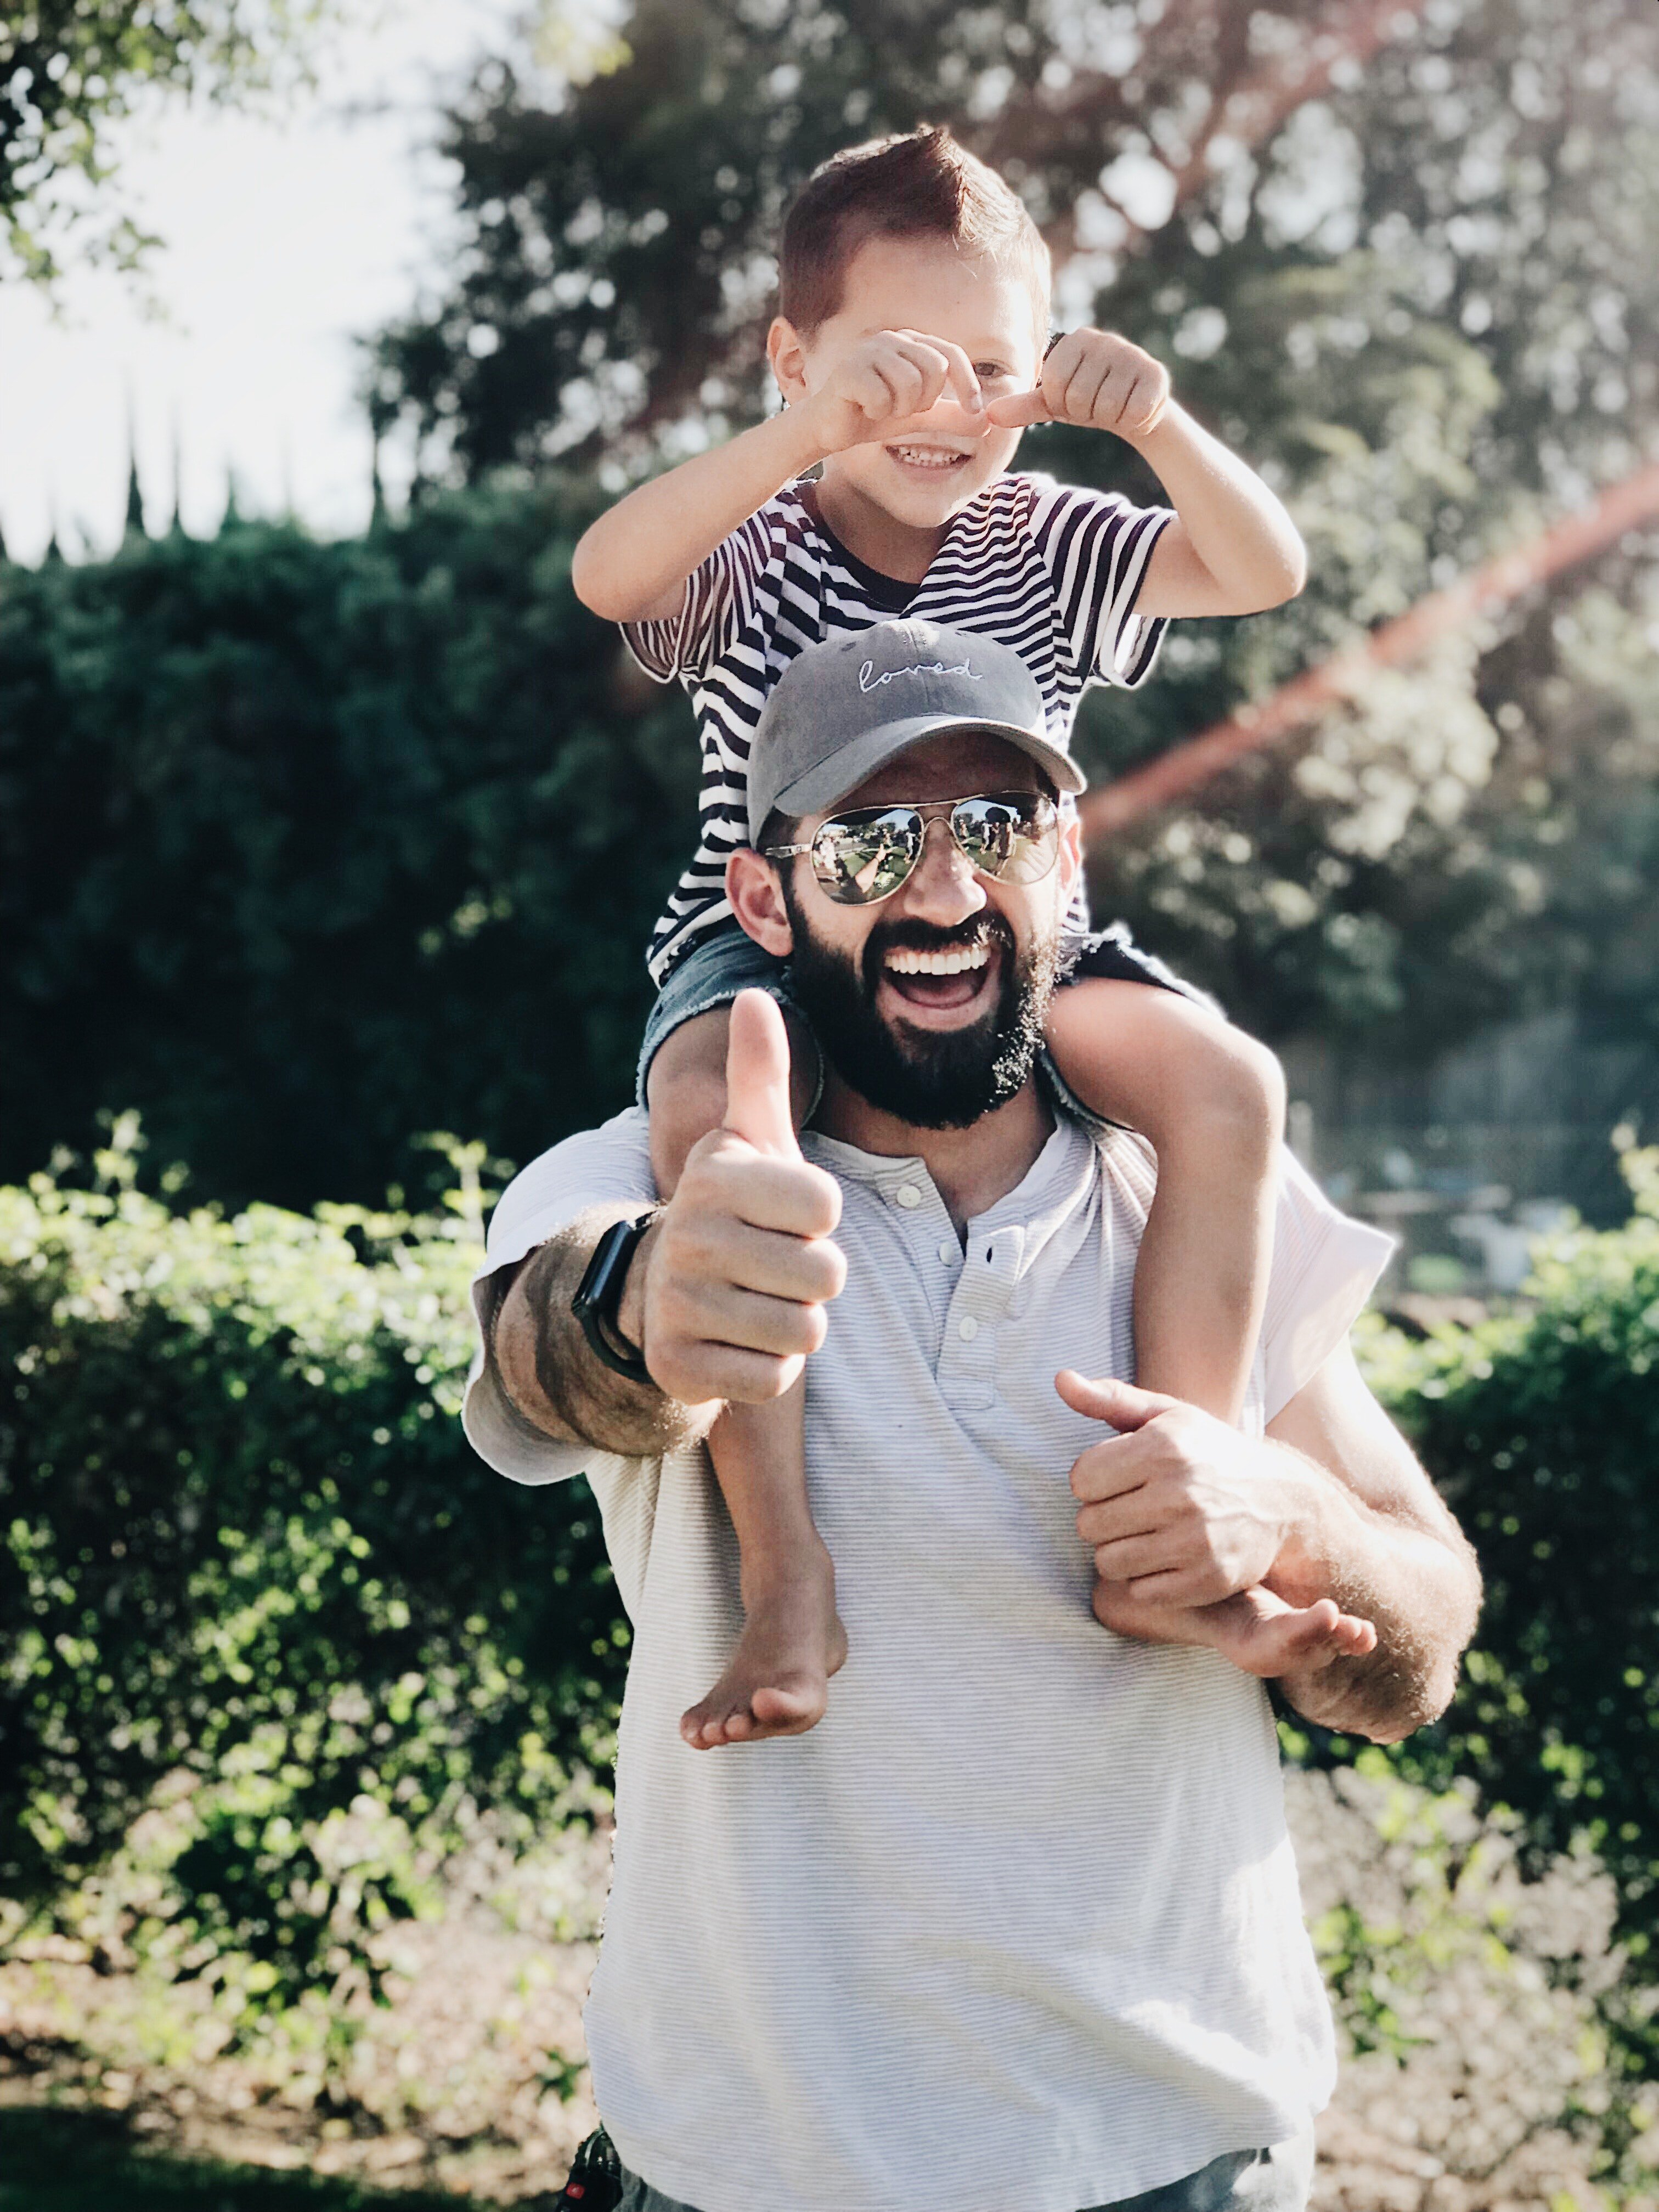 An image of a father and his son   Photo: Pexels